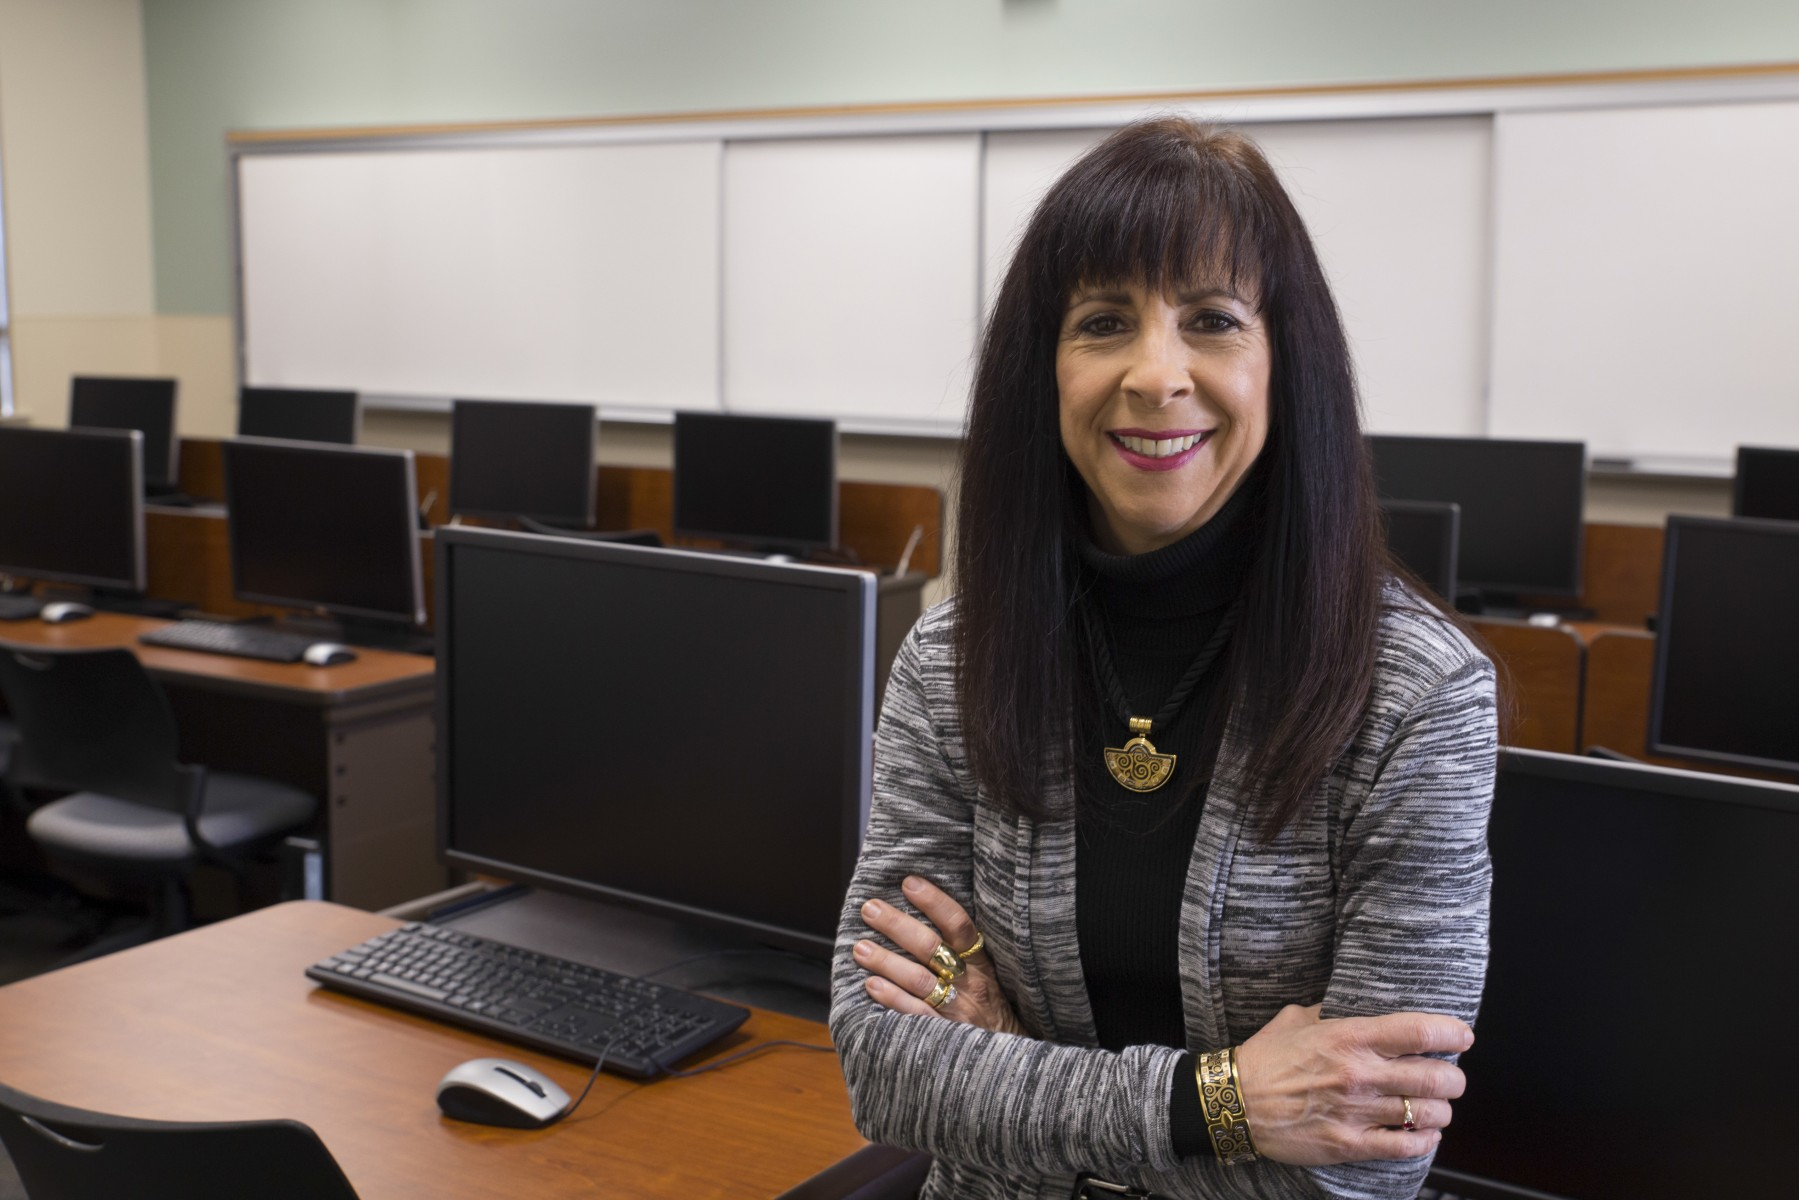 Katherine Kantardjieff, the founding dean of the College of Science and Mathematics, will begin a new position as provost at Cal State Monterey Bay on July 1.